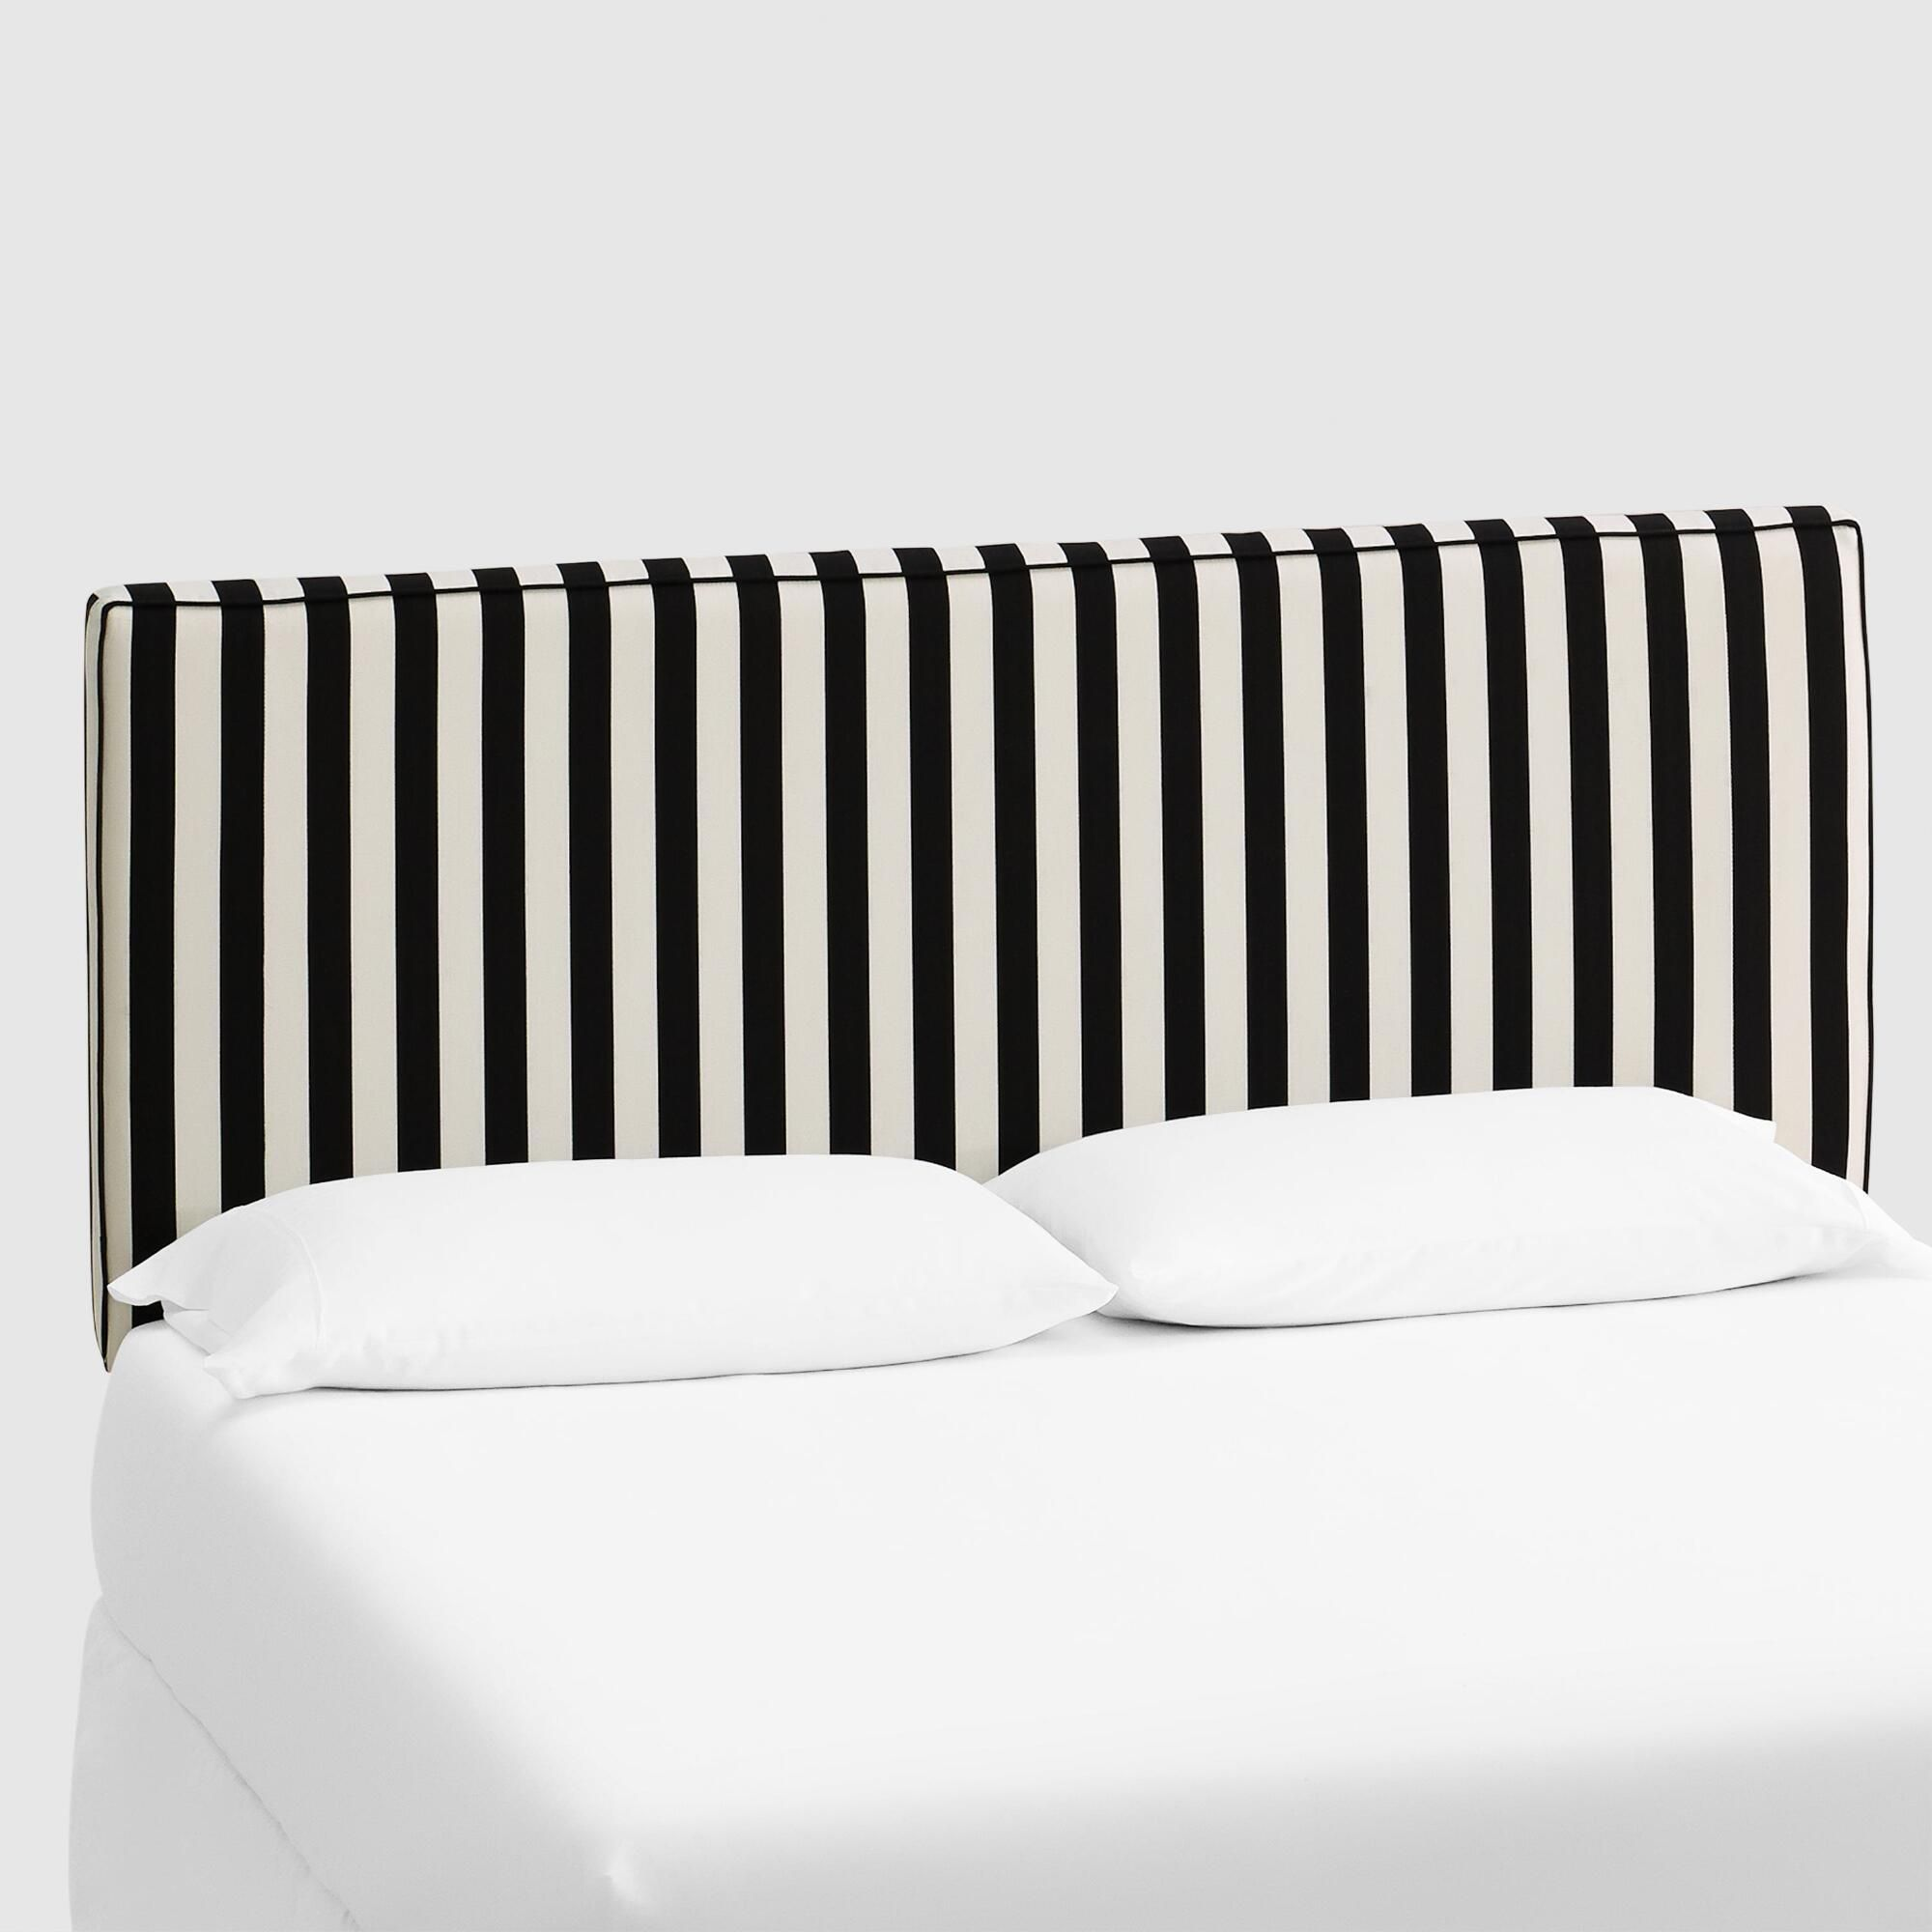 Canopy Stripe Loran Upholstered Headboard Black Fabric California King Headboard By World Market California King Headboard Headboards For Beds Full Headboard